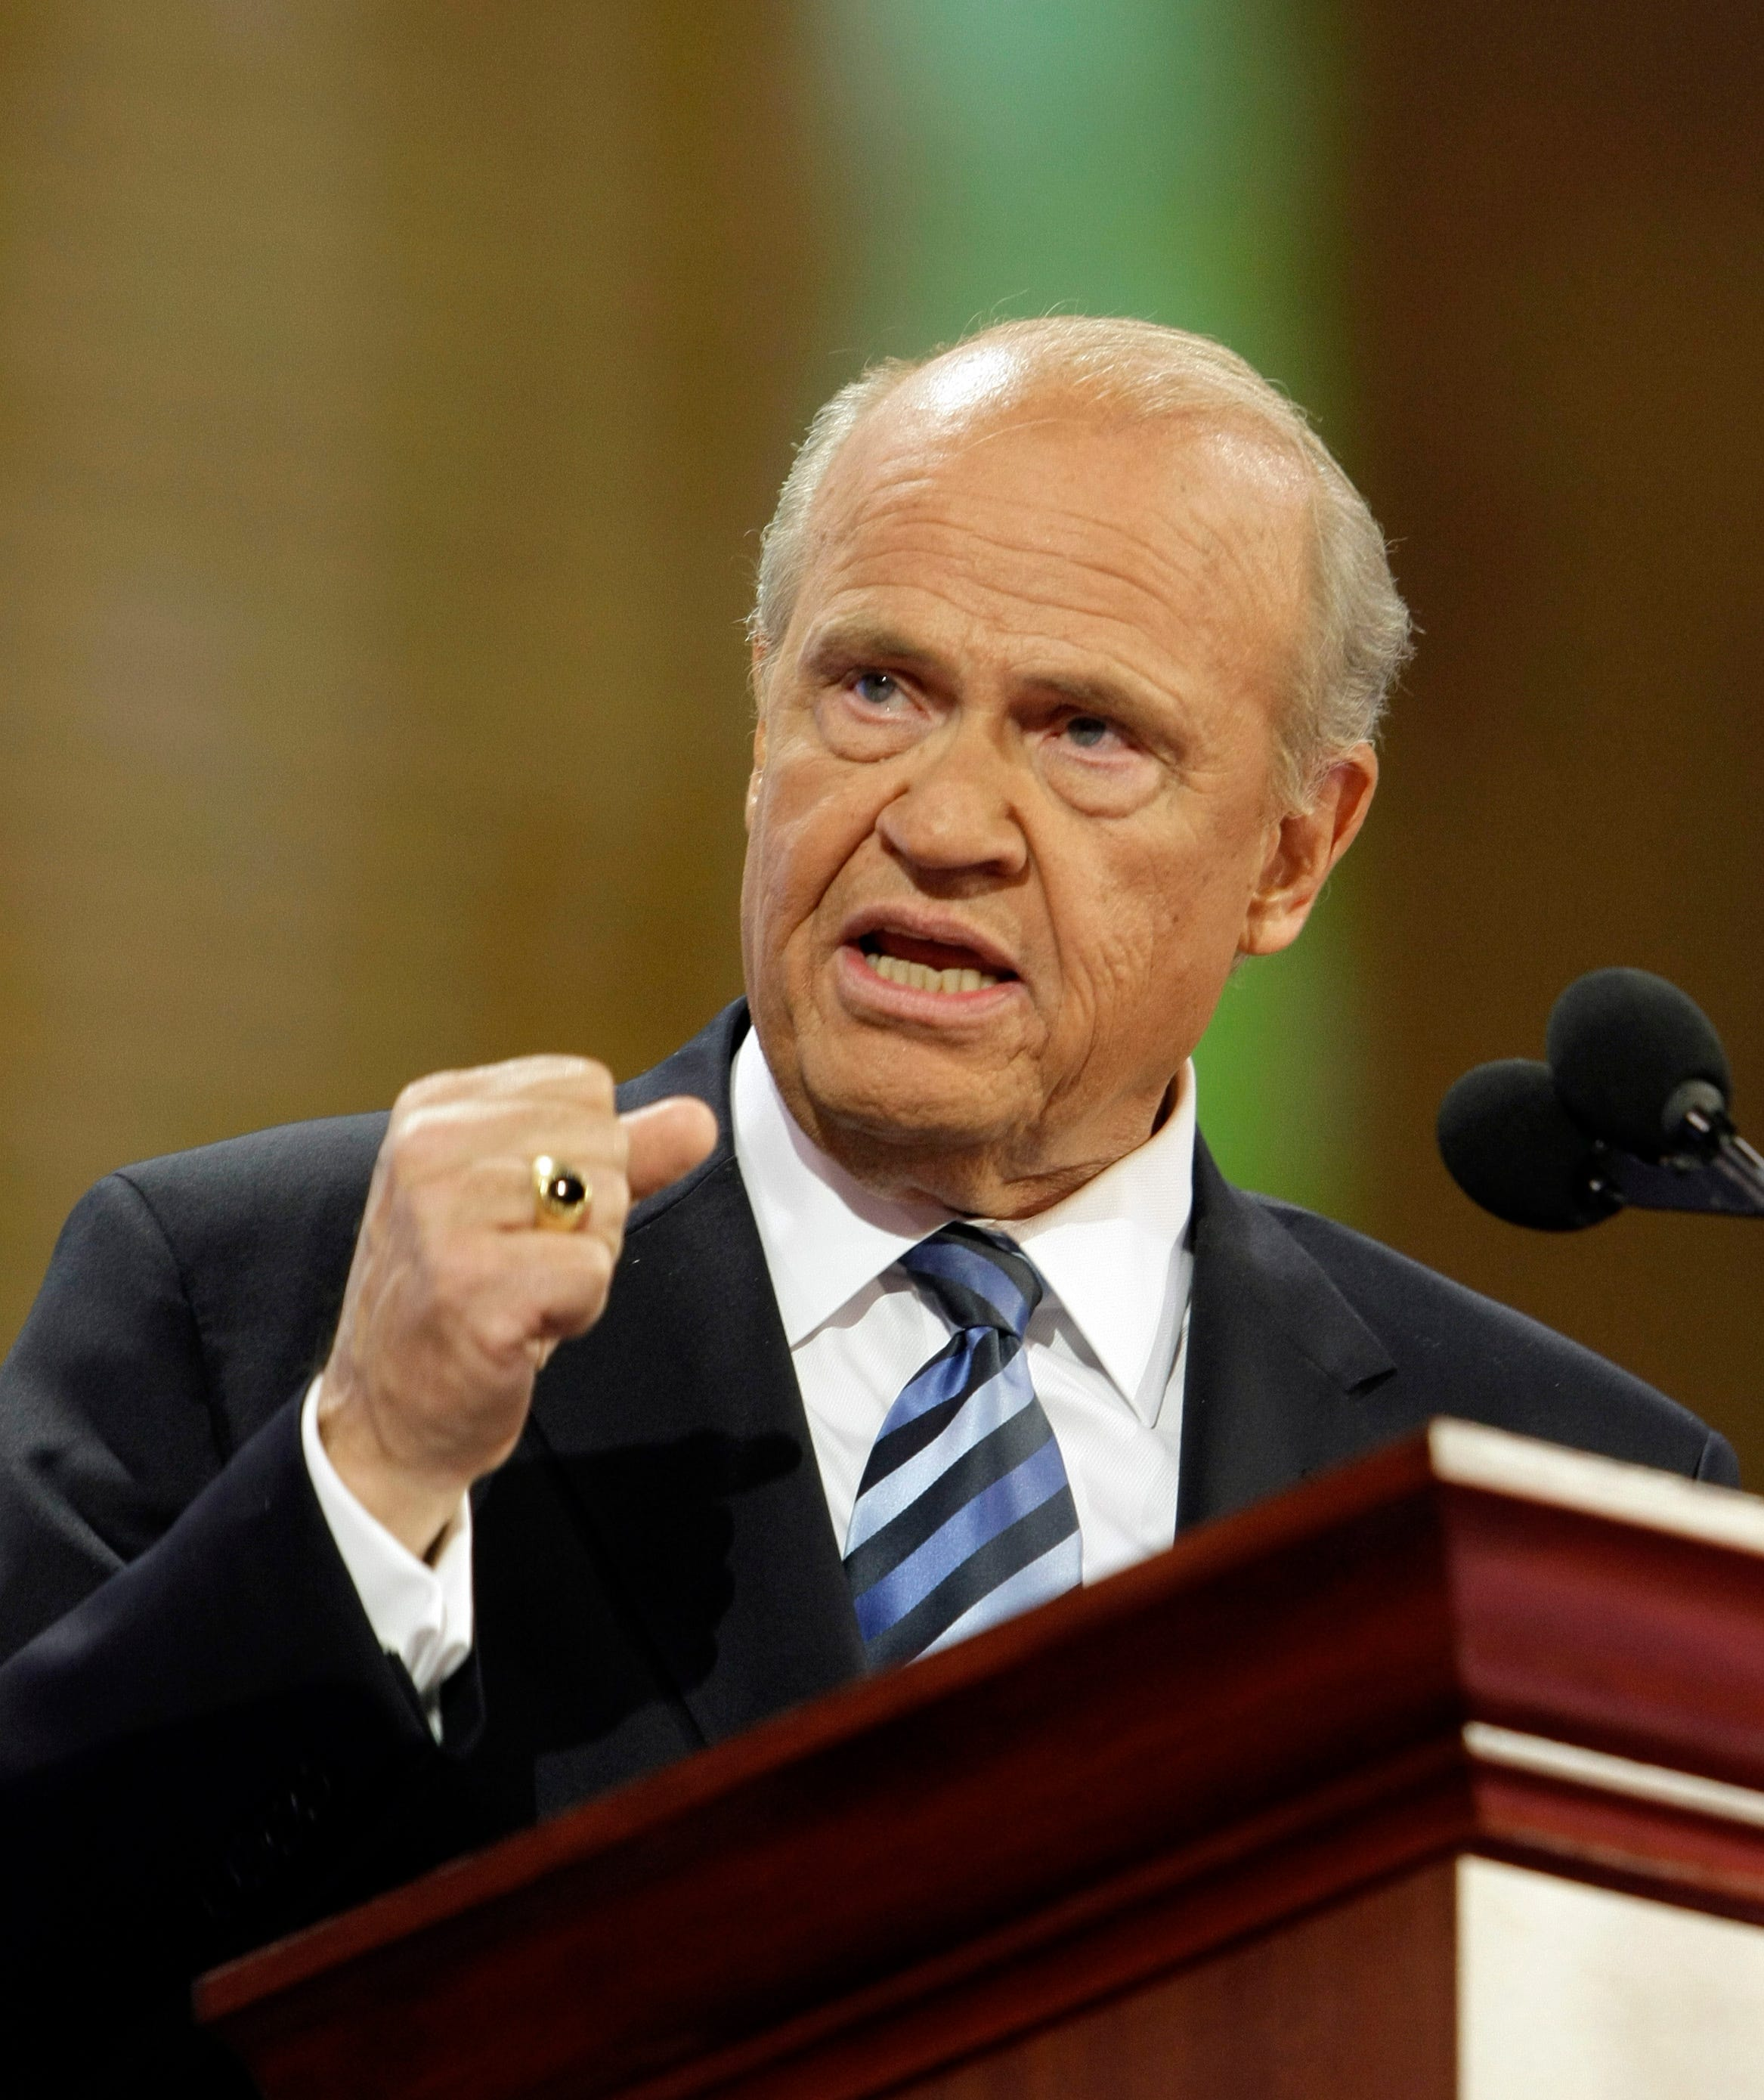 fred dalton thompson movies and tv shows